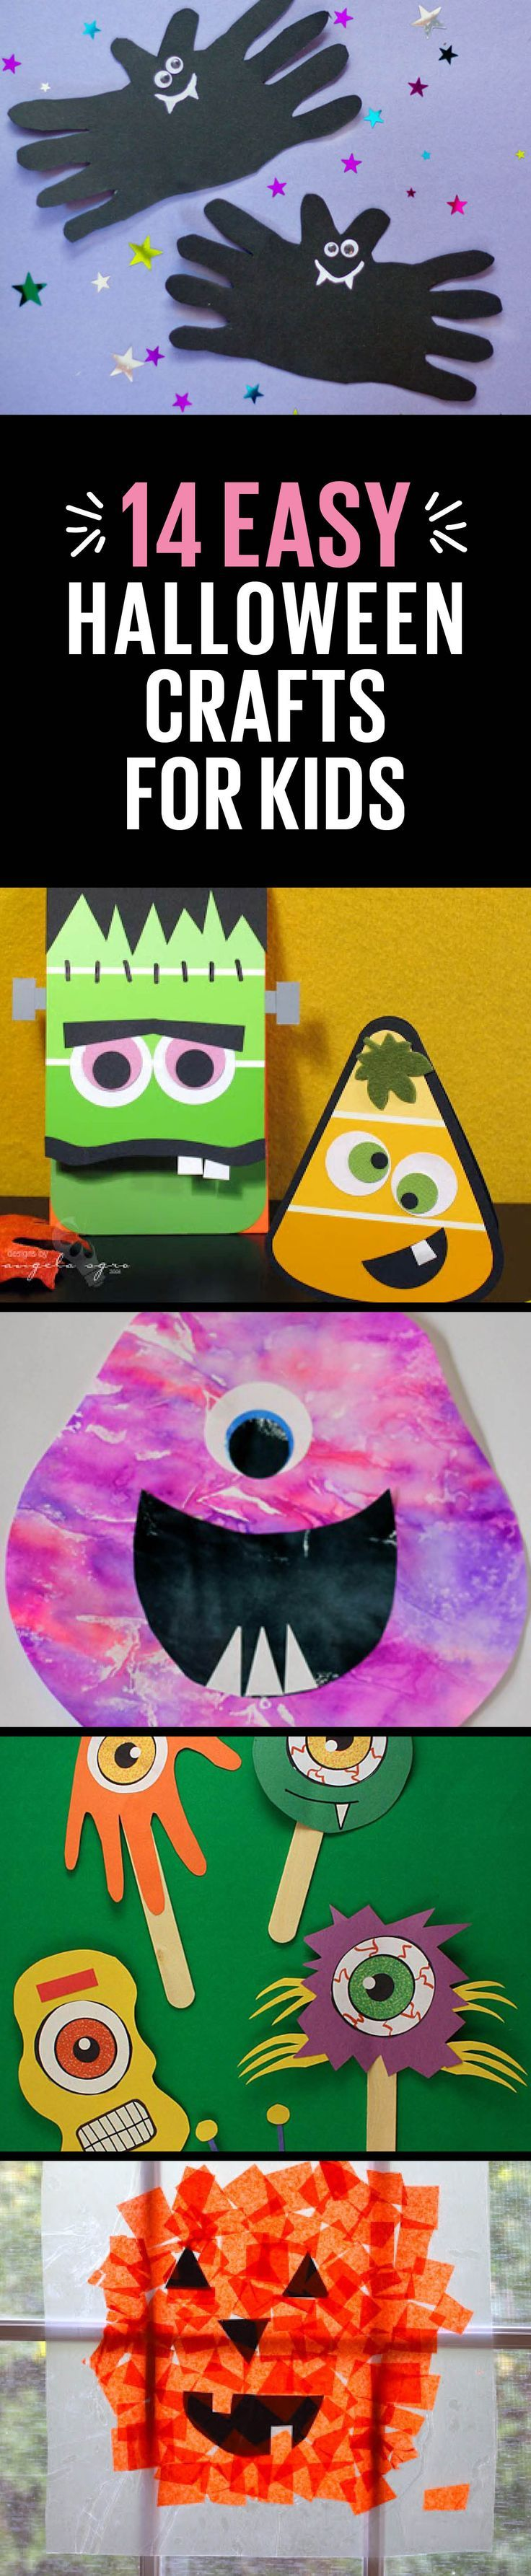 Perfect kids' crafts to get the house ready for Halloween.